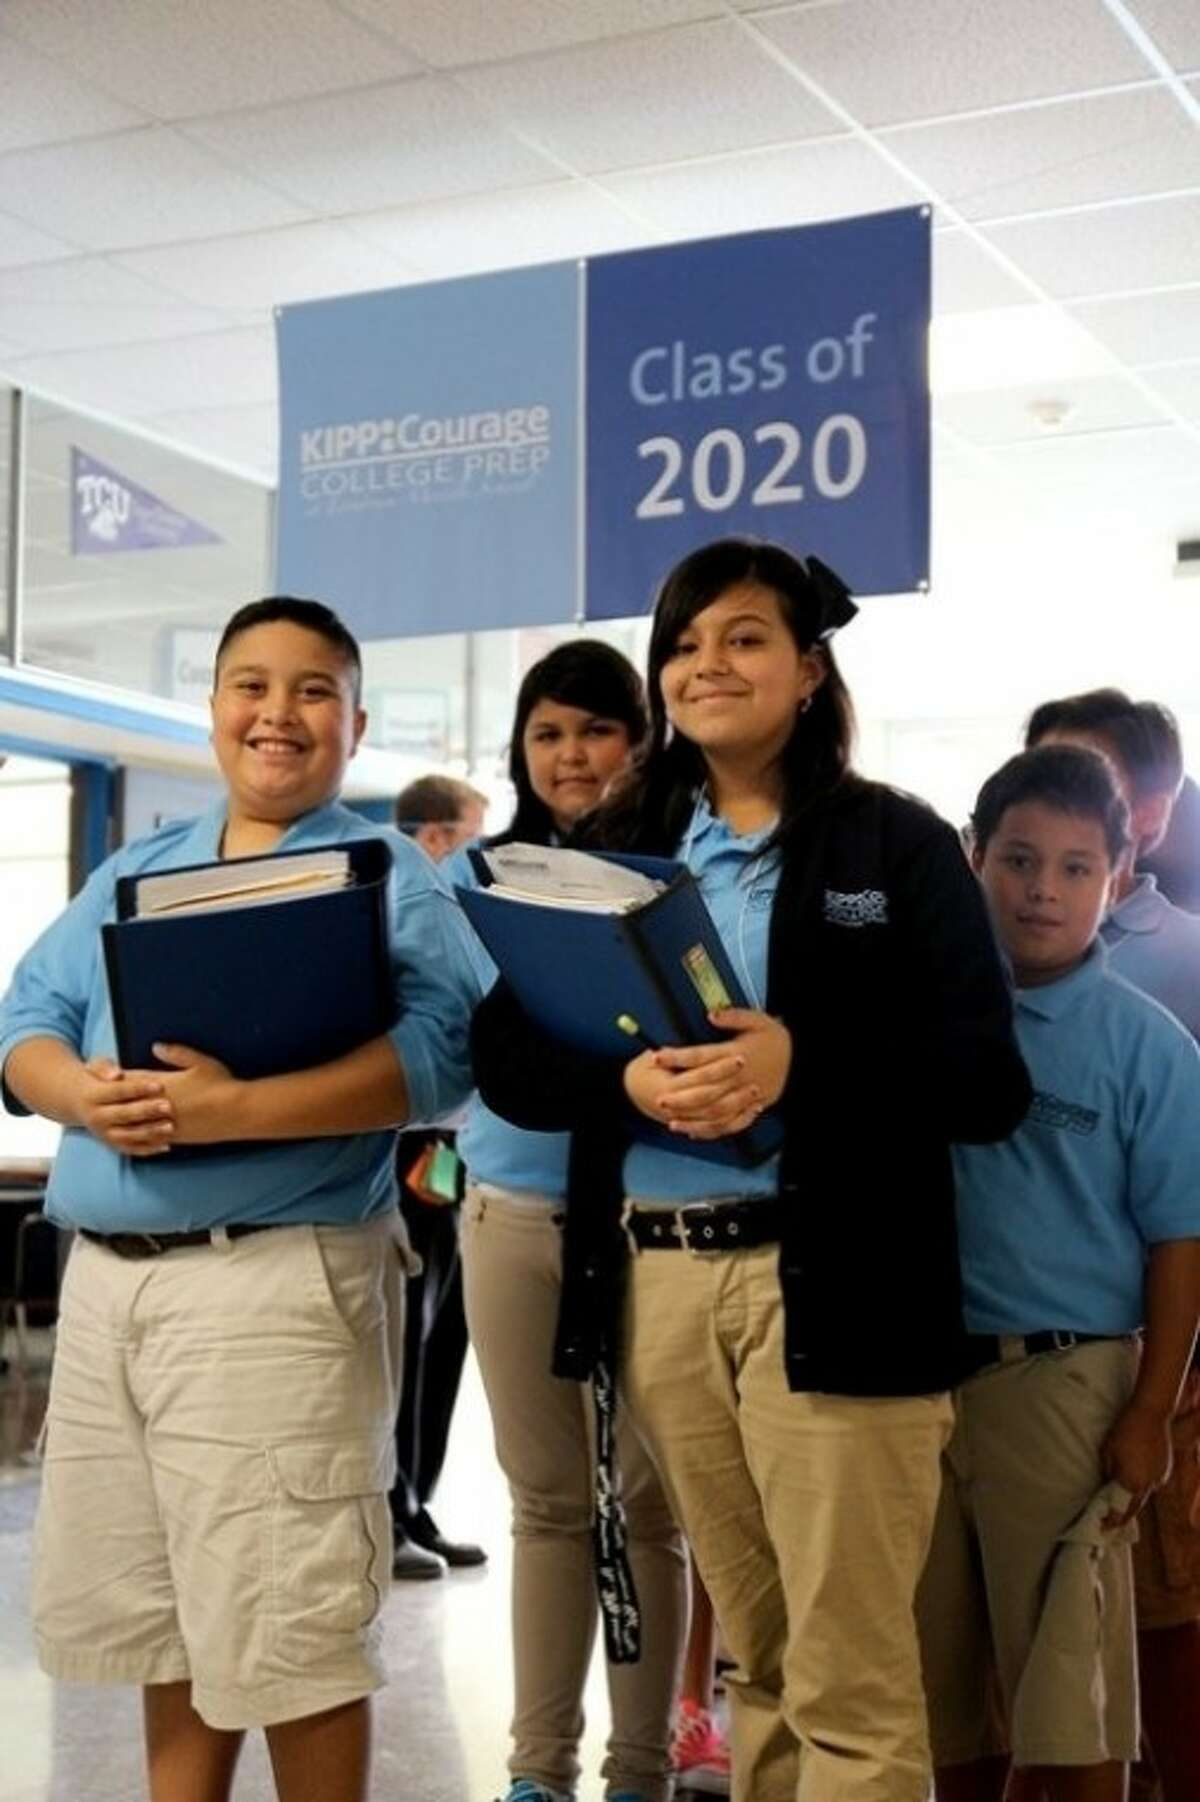 KIPP Courage students at Landrum Middle School in Spring Branch ISD.